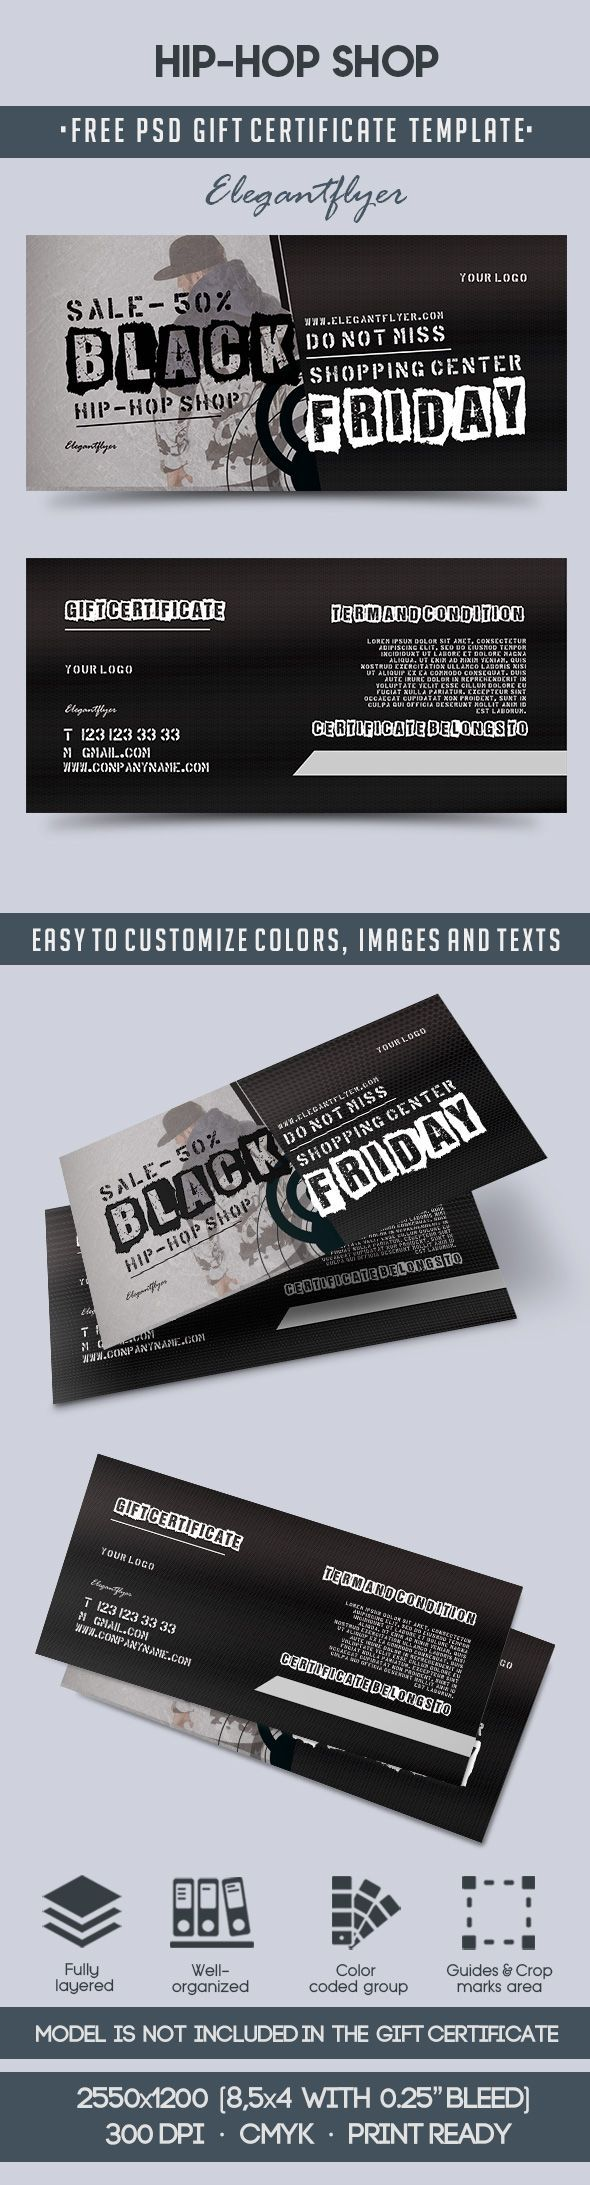 The 66 best free gift certificate templates images on pinterest hip hop shop free gift certificate psd template yelopaper Gallery